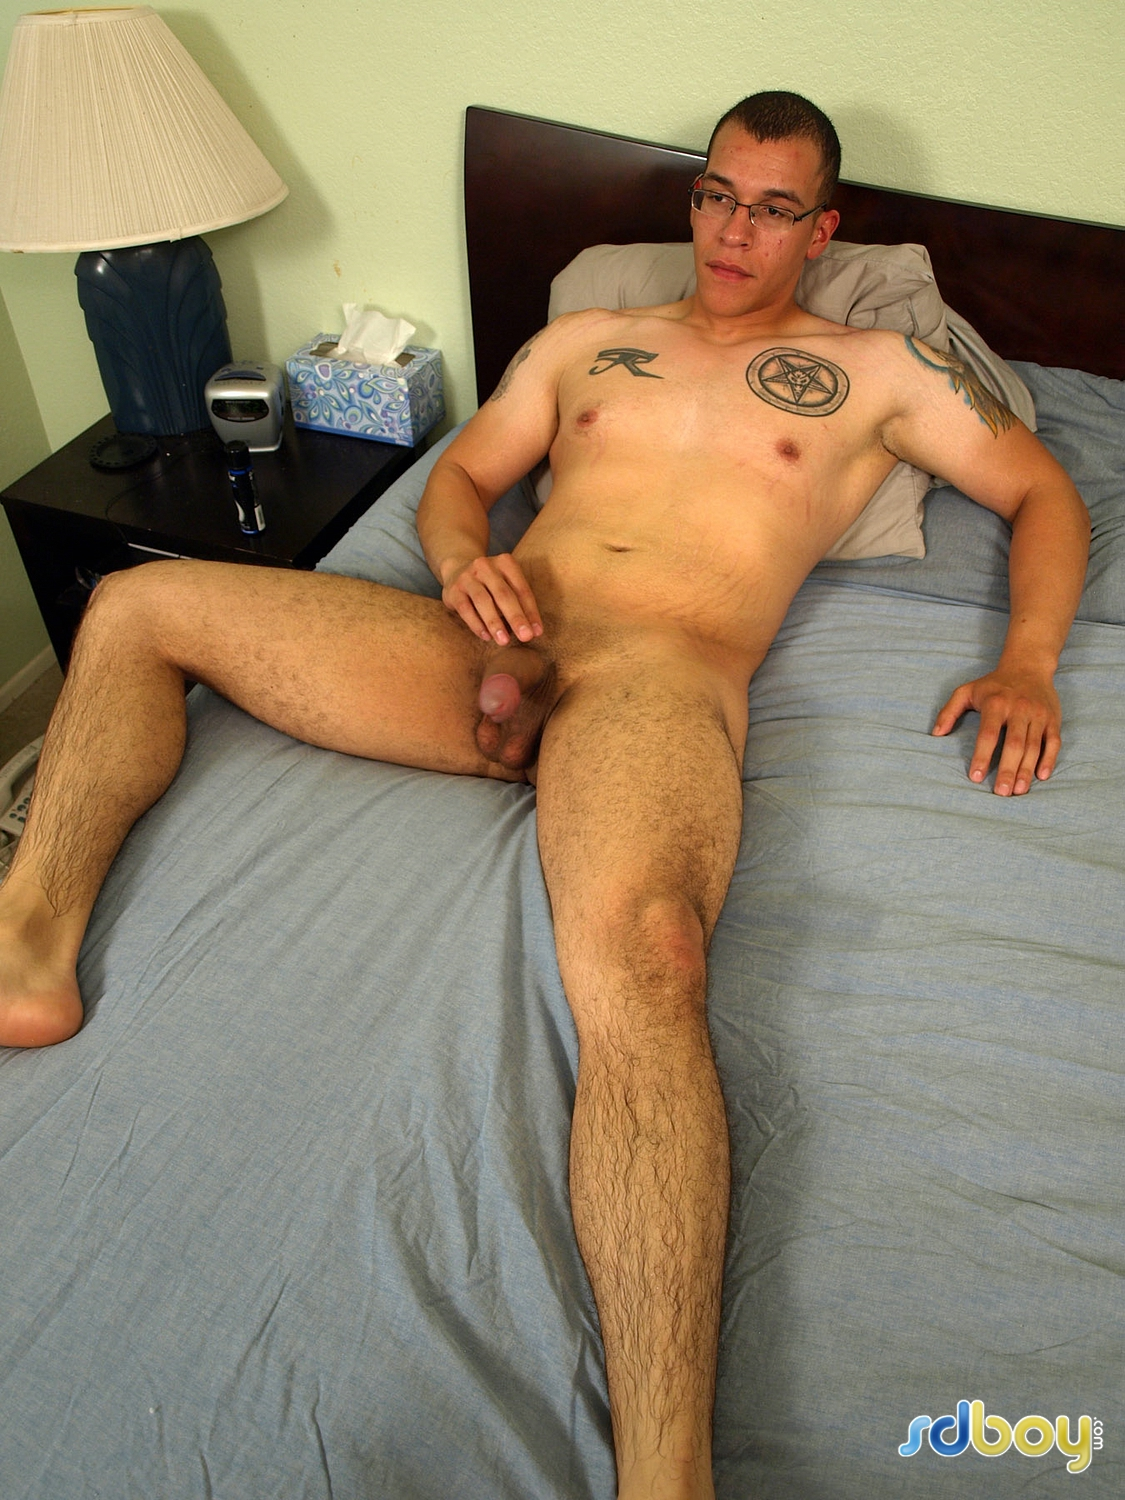 SD-Boy-Ray-Sosa-Big-Uncut-Cock-Latino-Marine-Masturbating-Amateur-Gay-Porn-07 Amateur Gay Latino Marine Shows His Tatts and Jerks His Uncut Cock